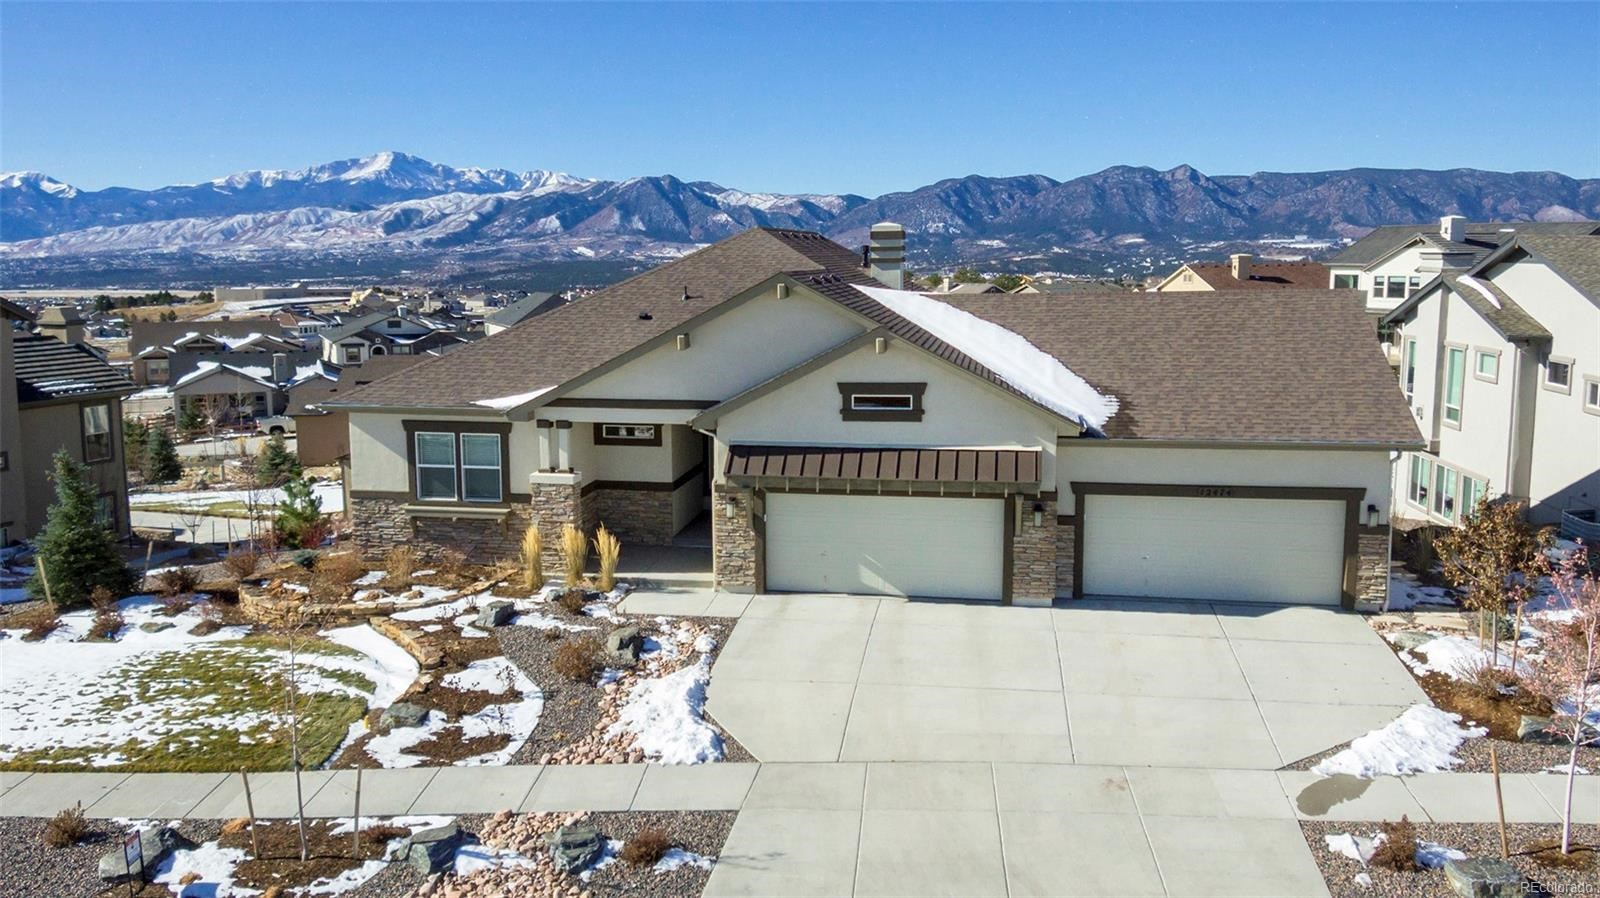 MLS# 6490678 - 40 - 12474 Carmel Ridge Road, Colorado Springs, CO 80921